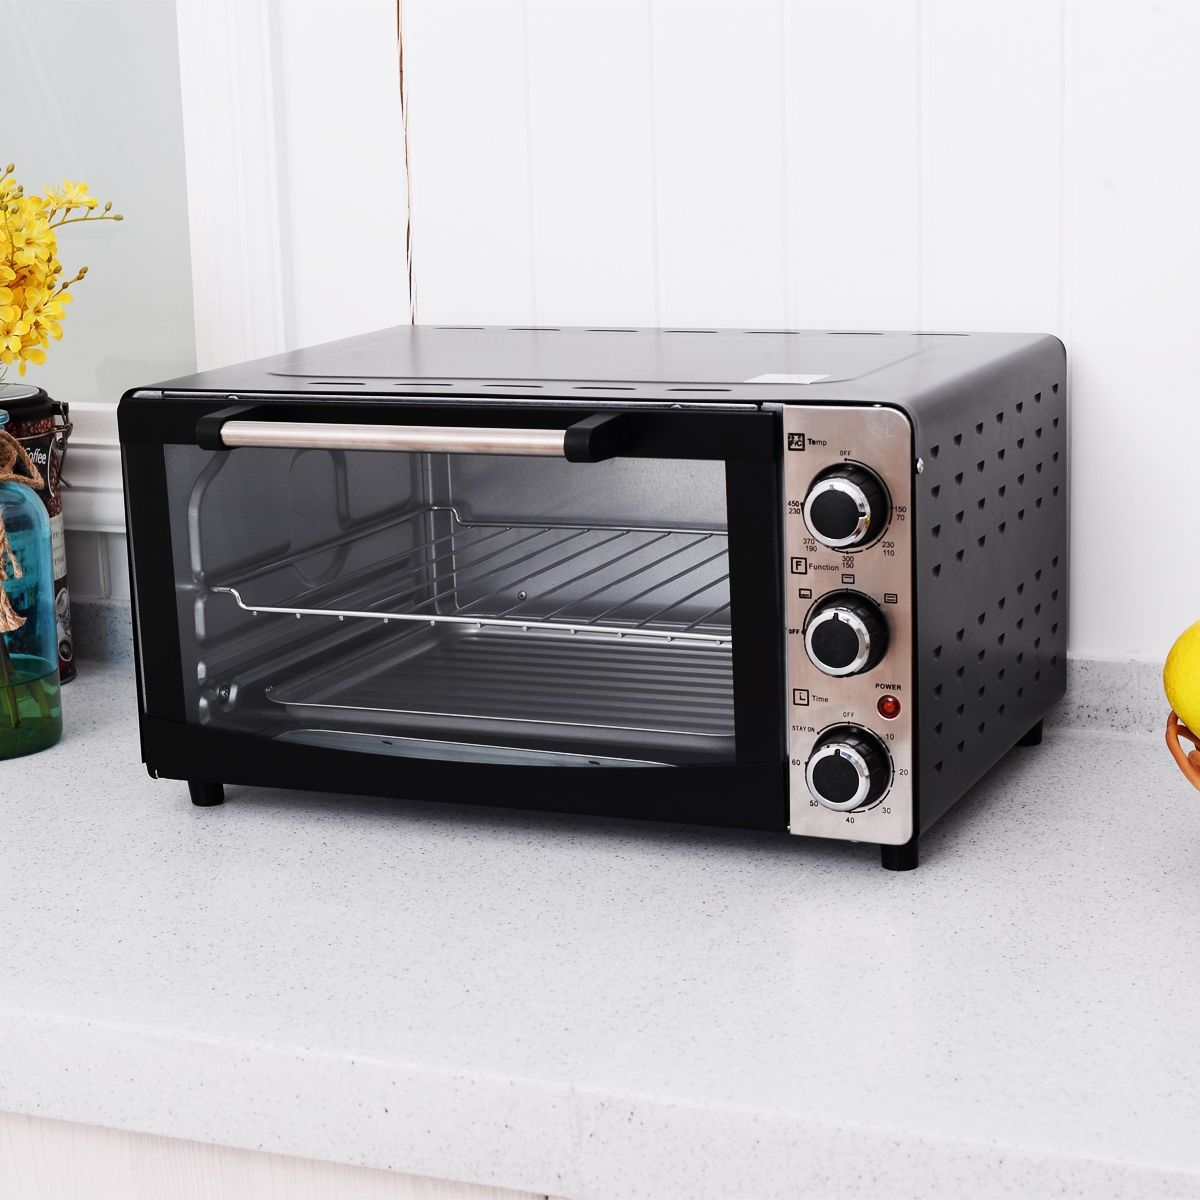 1300w 20l Electric Toaster Oven Electric Toaster Toaster Oven